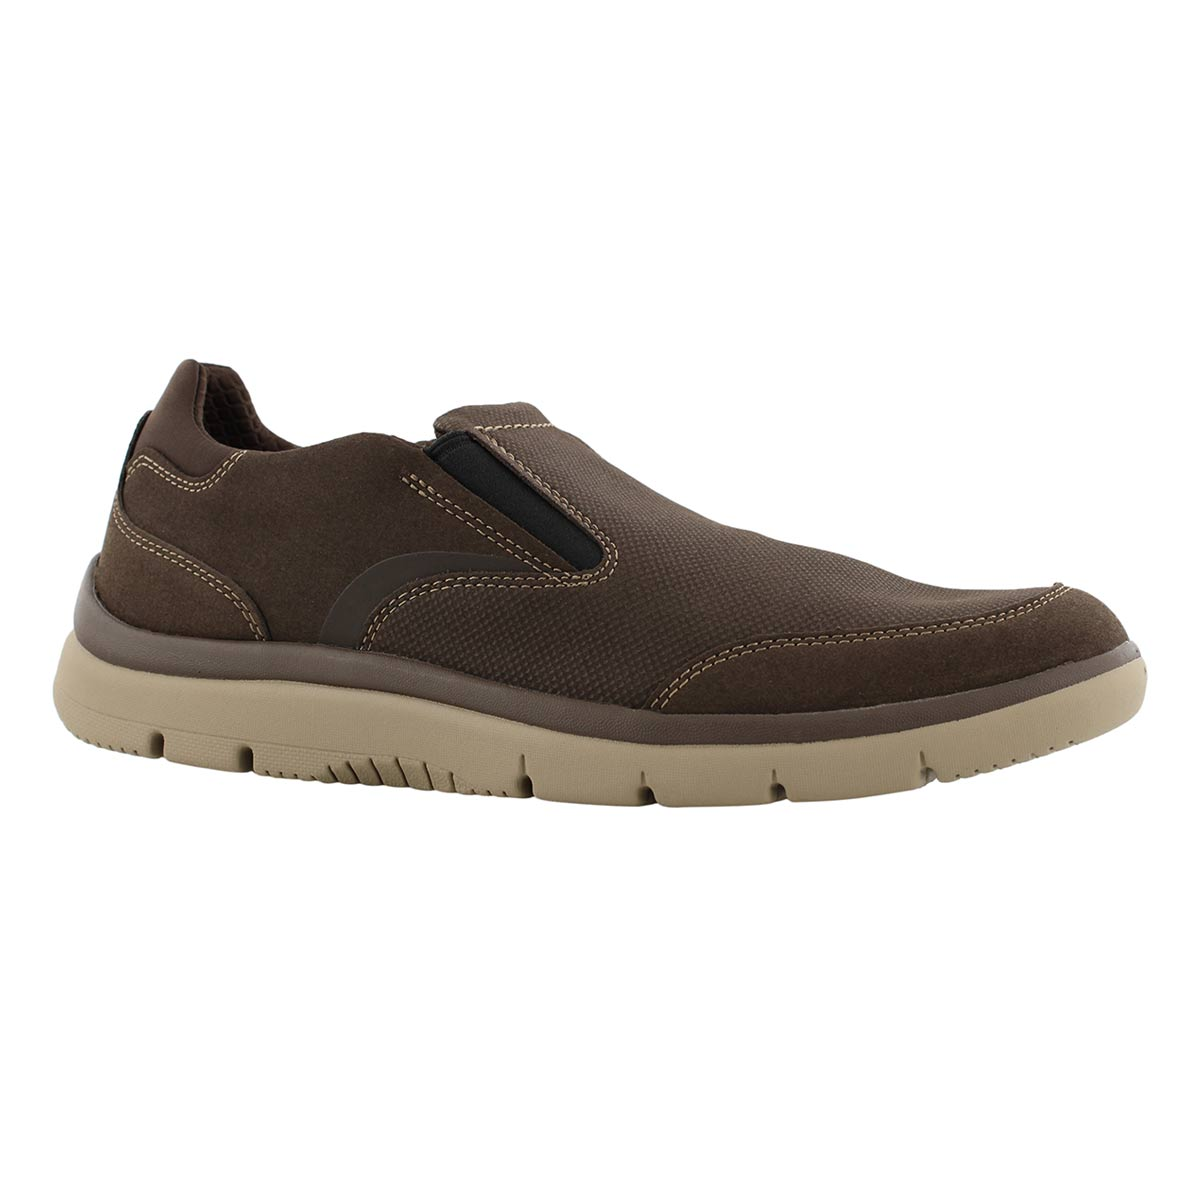 Mns Tunsil Step brn casual slip on shoe